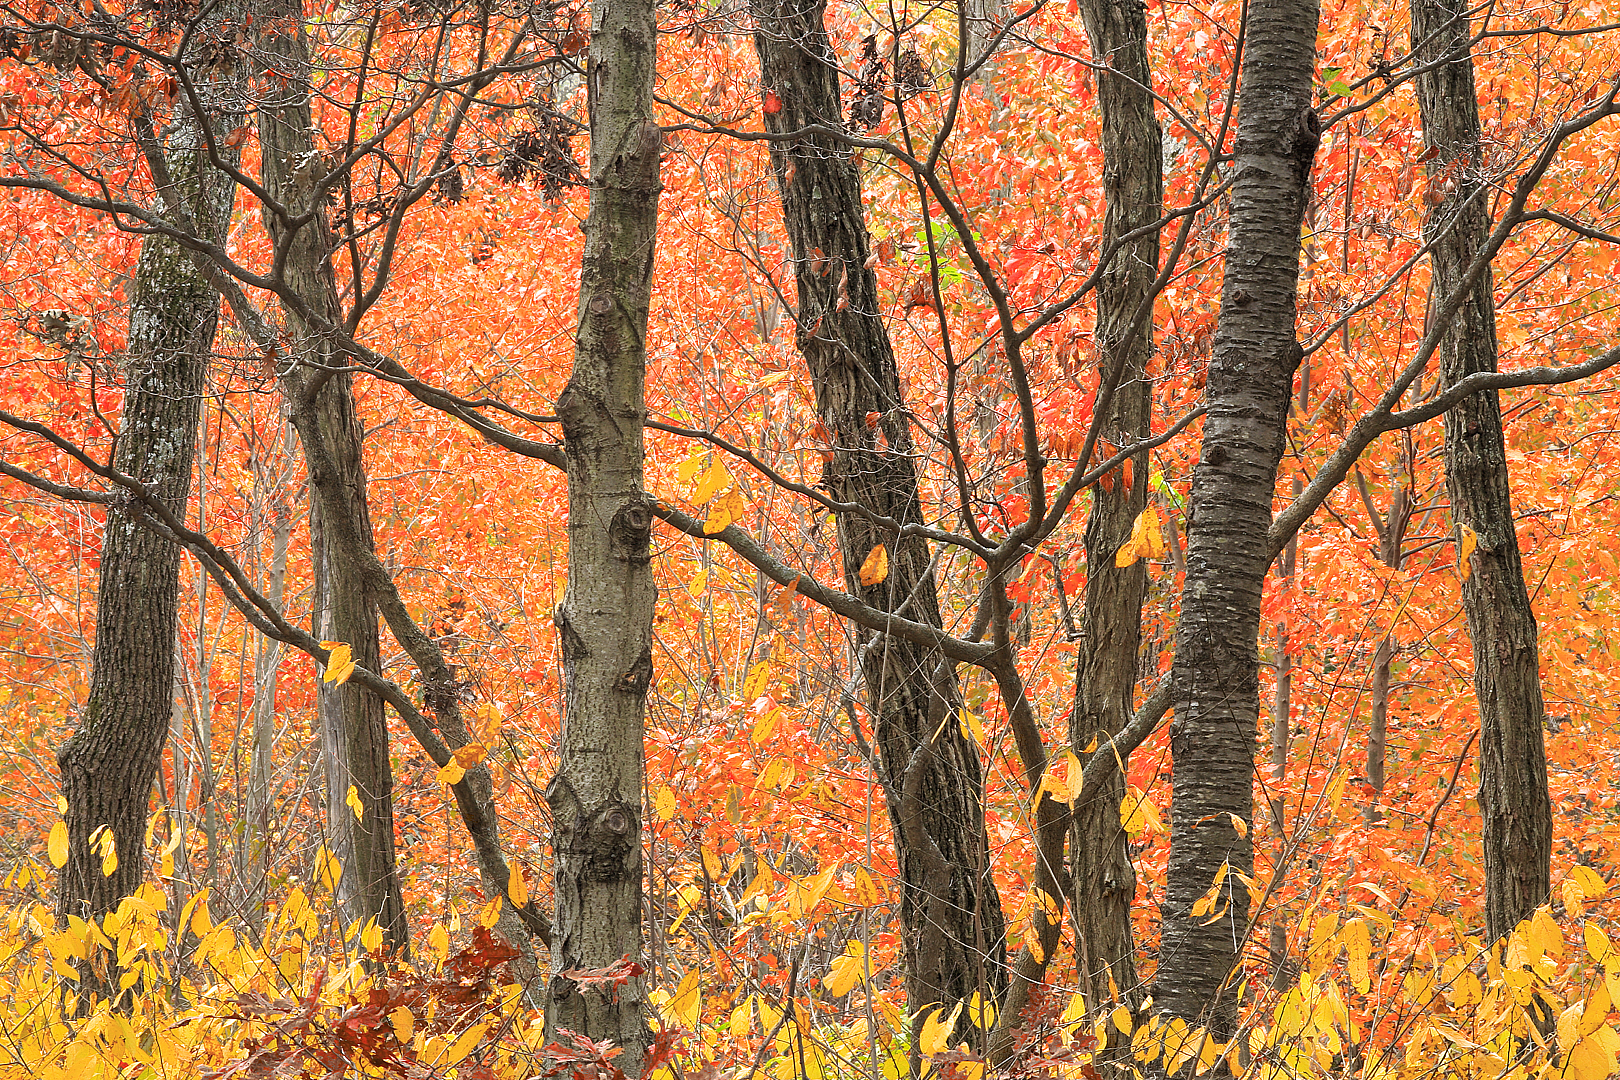 Tree Trunks and Autumn Color 14-25x9-5-1-1.jpg